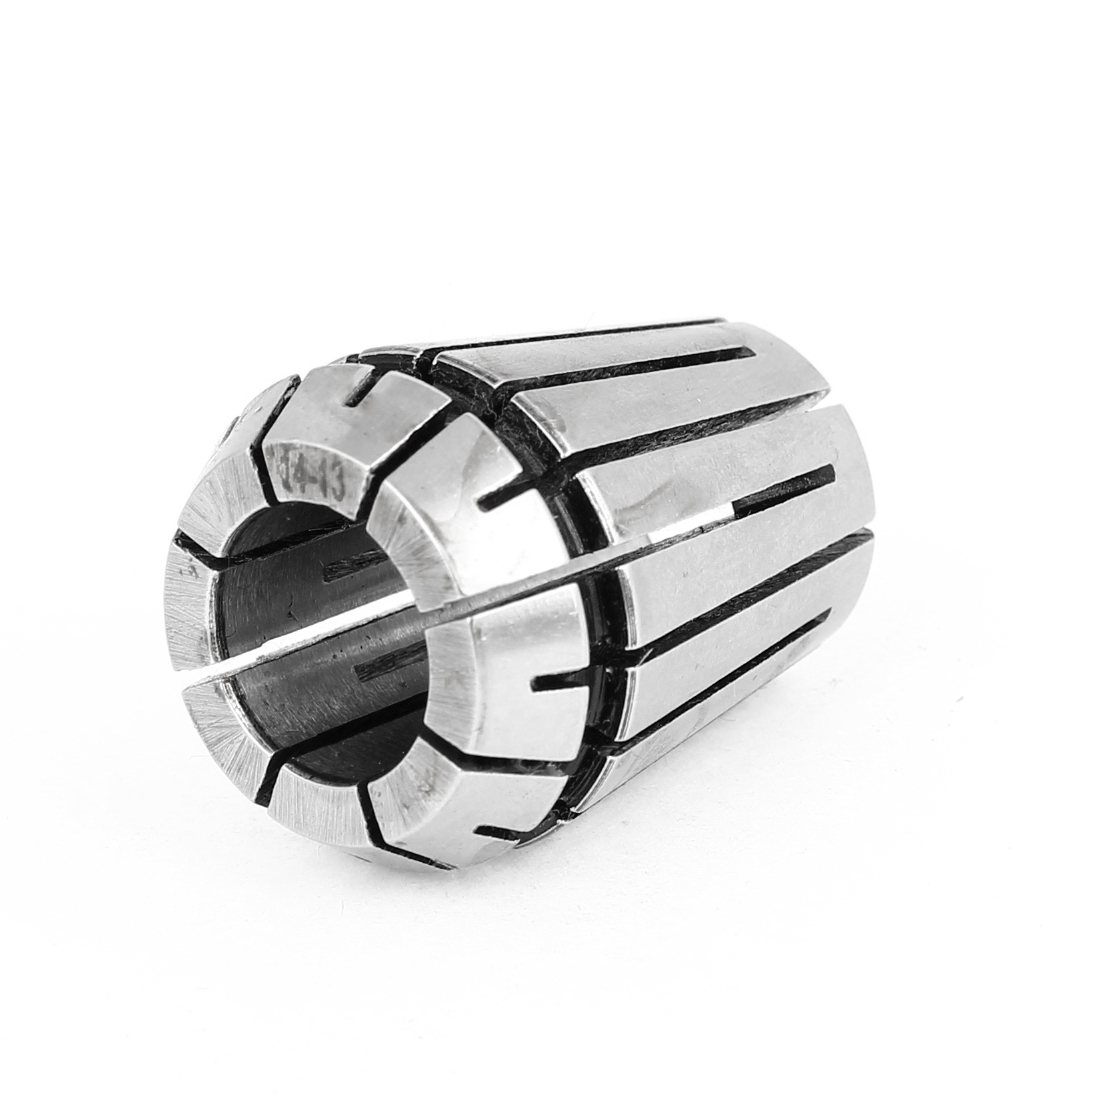 Clamping Range 14-13mm Stainless Steel ER25 Precision Spring Collet